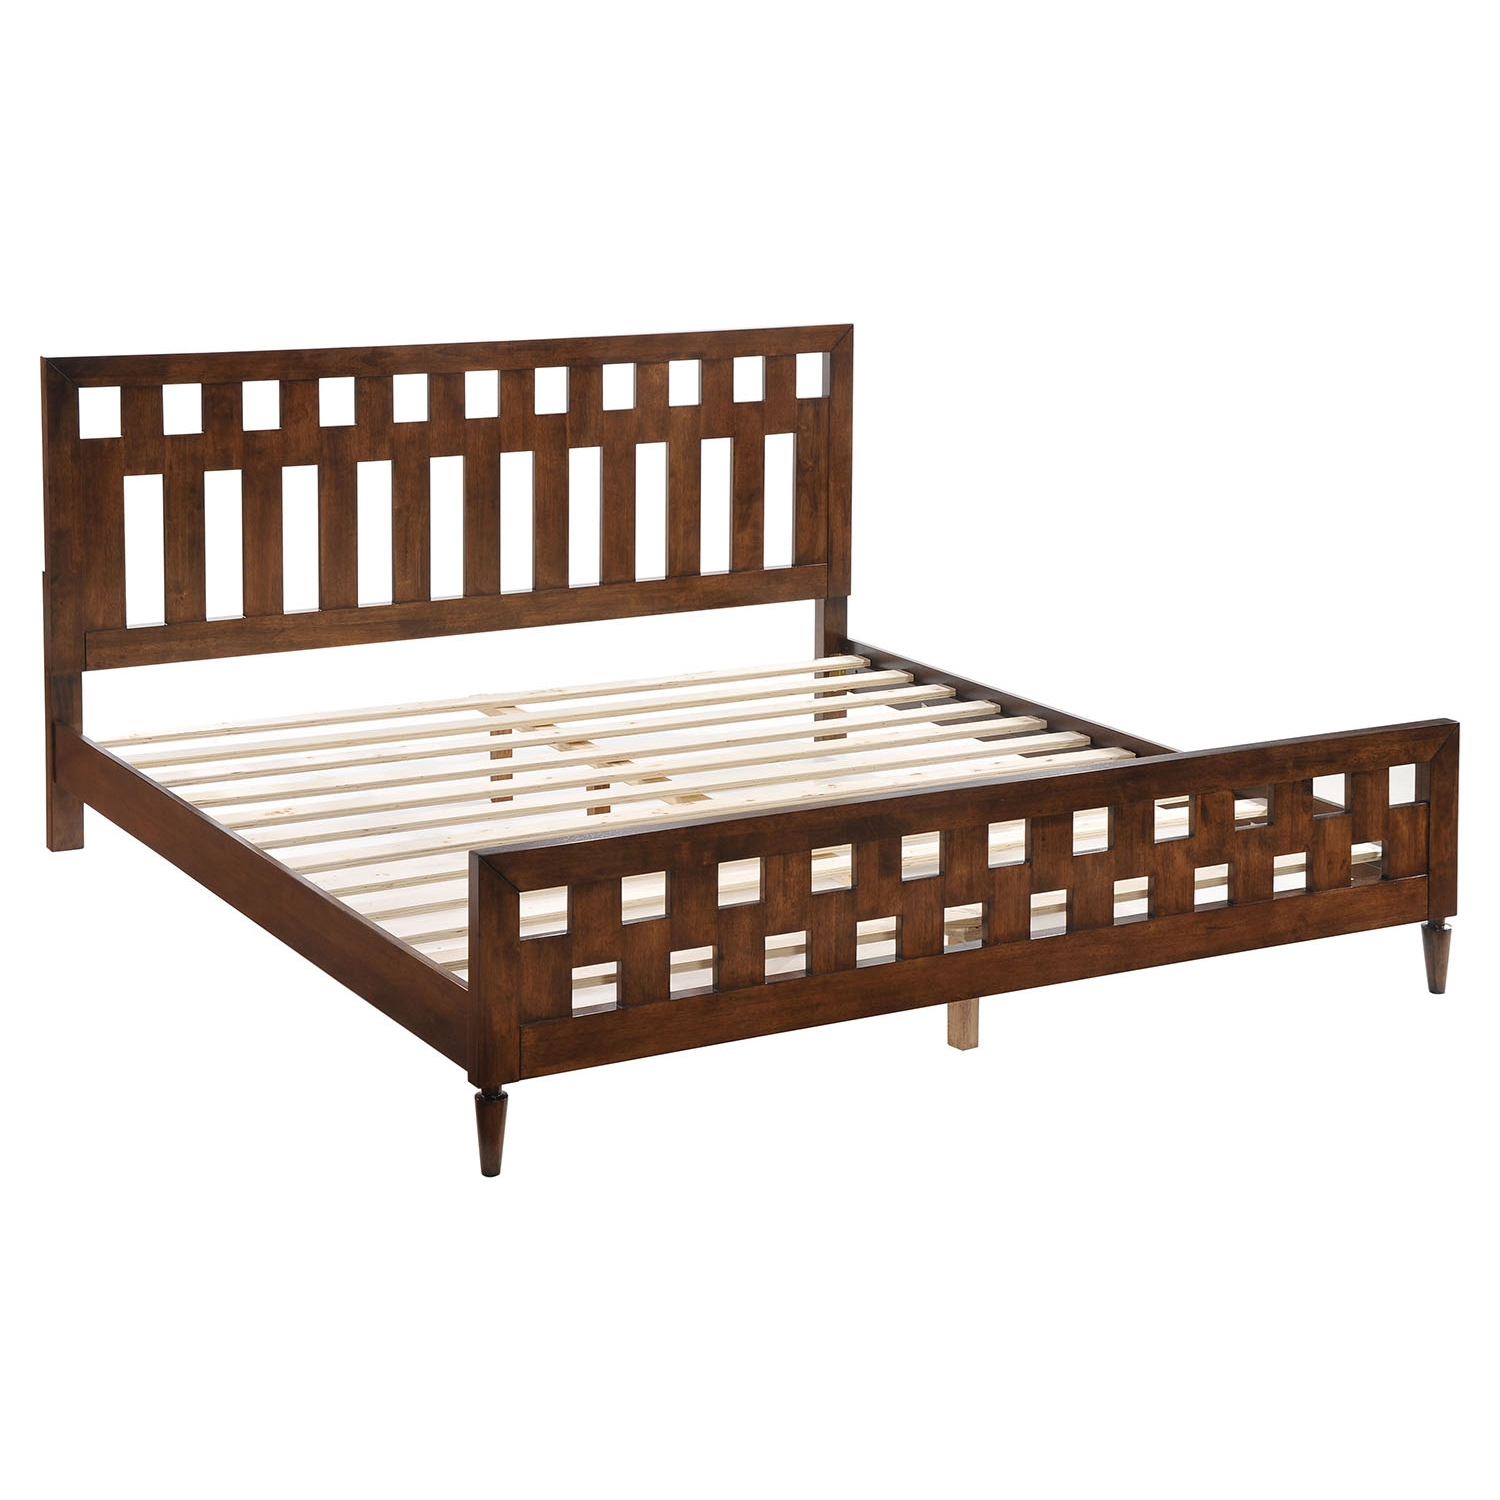 LA Walnut Bed - ZM-80030-BED